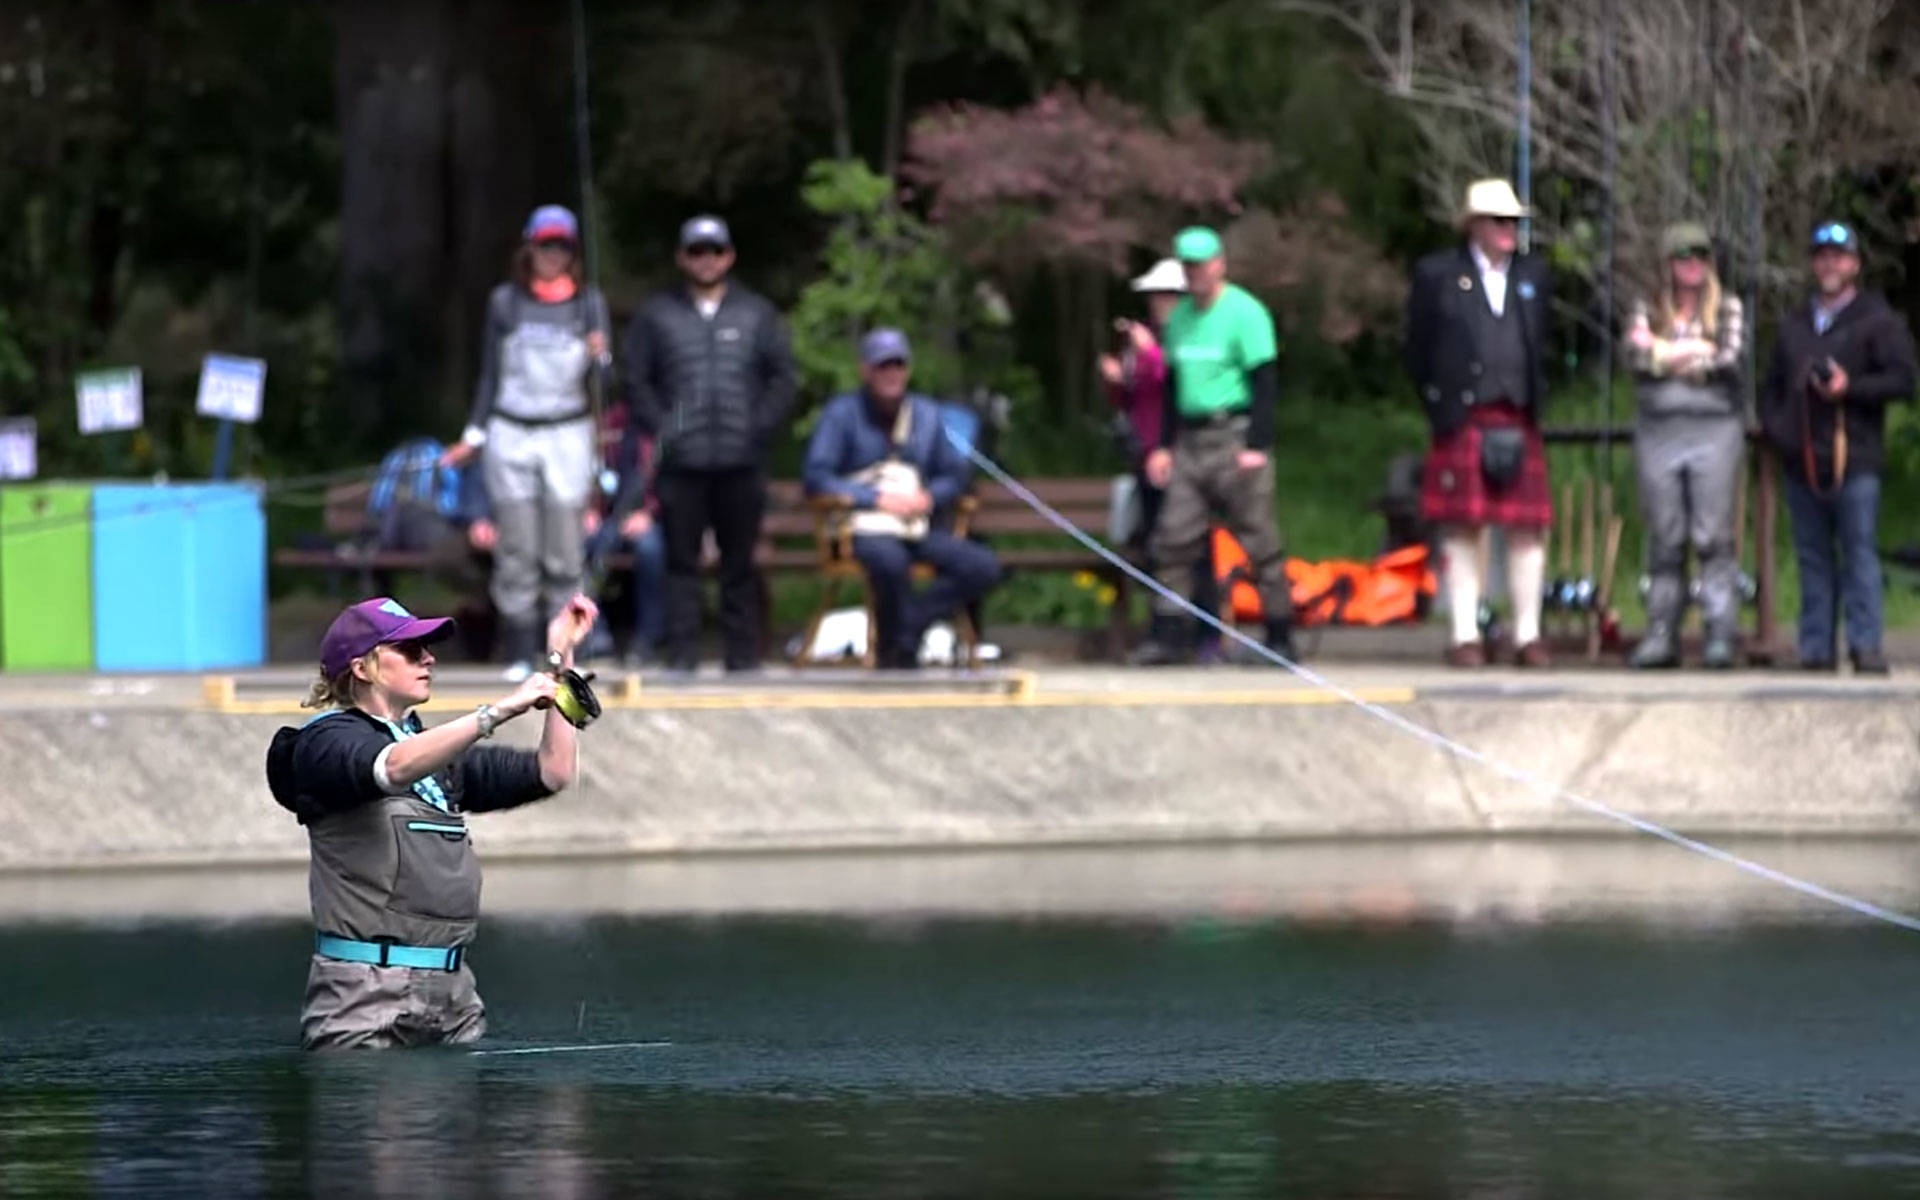 A competitor prepares to cast in the Spey-O-Rama world fly fishing championships in San Francisco.